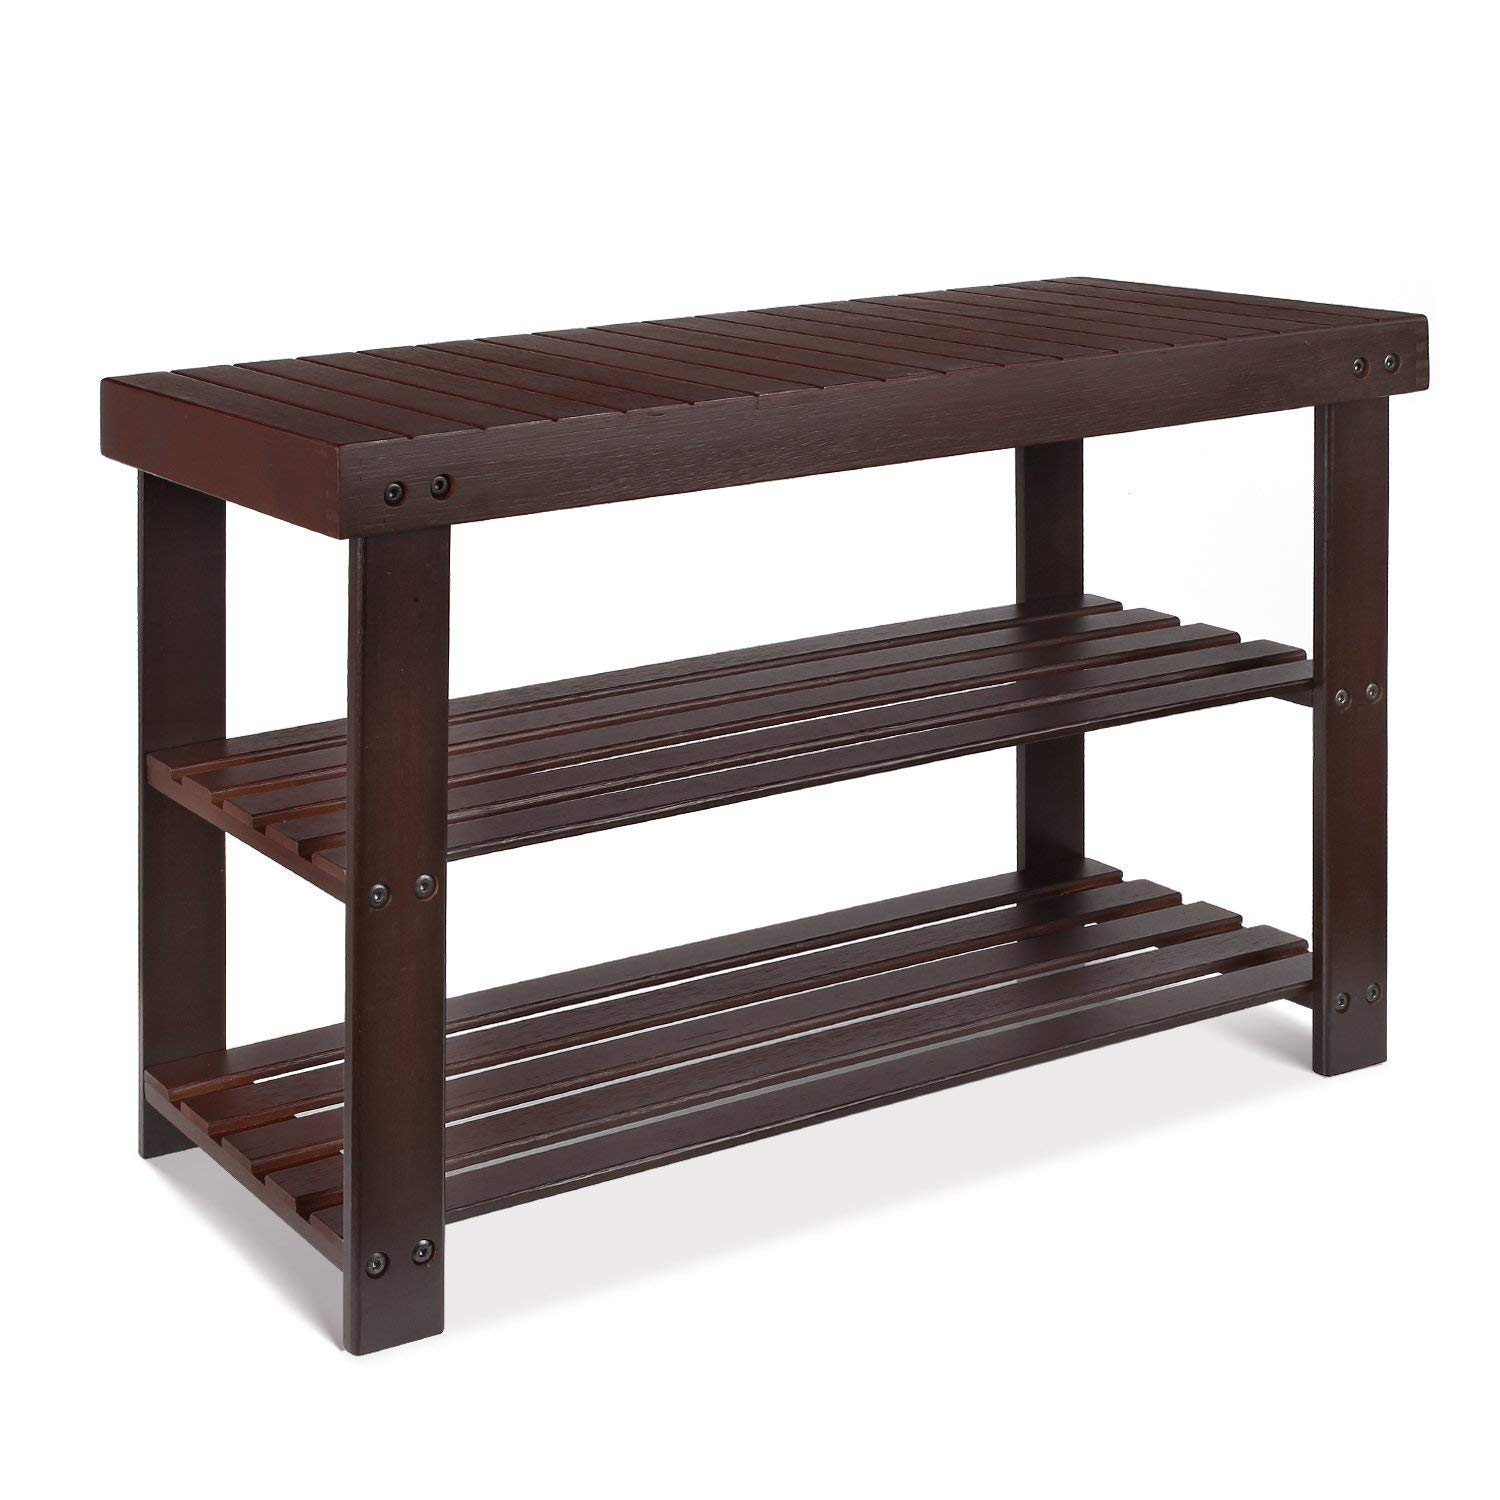 Roundhill Furniture Pina Quality Solid Wood Shoe Bench, Cherry Finish by Roundhill Furniture